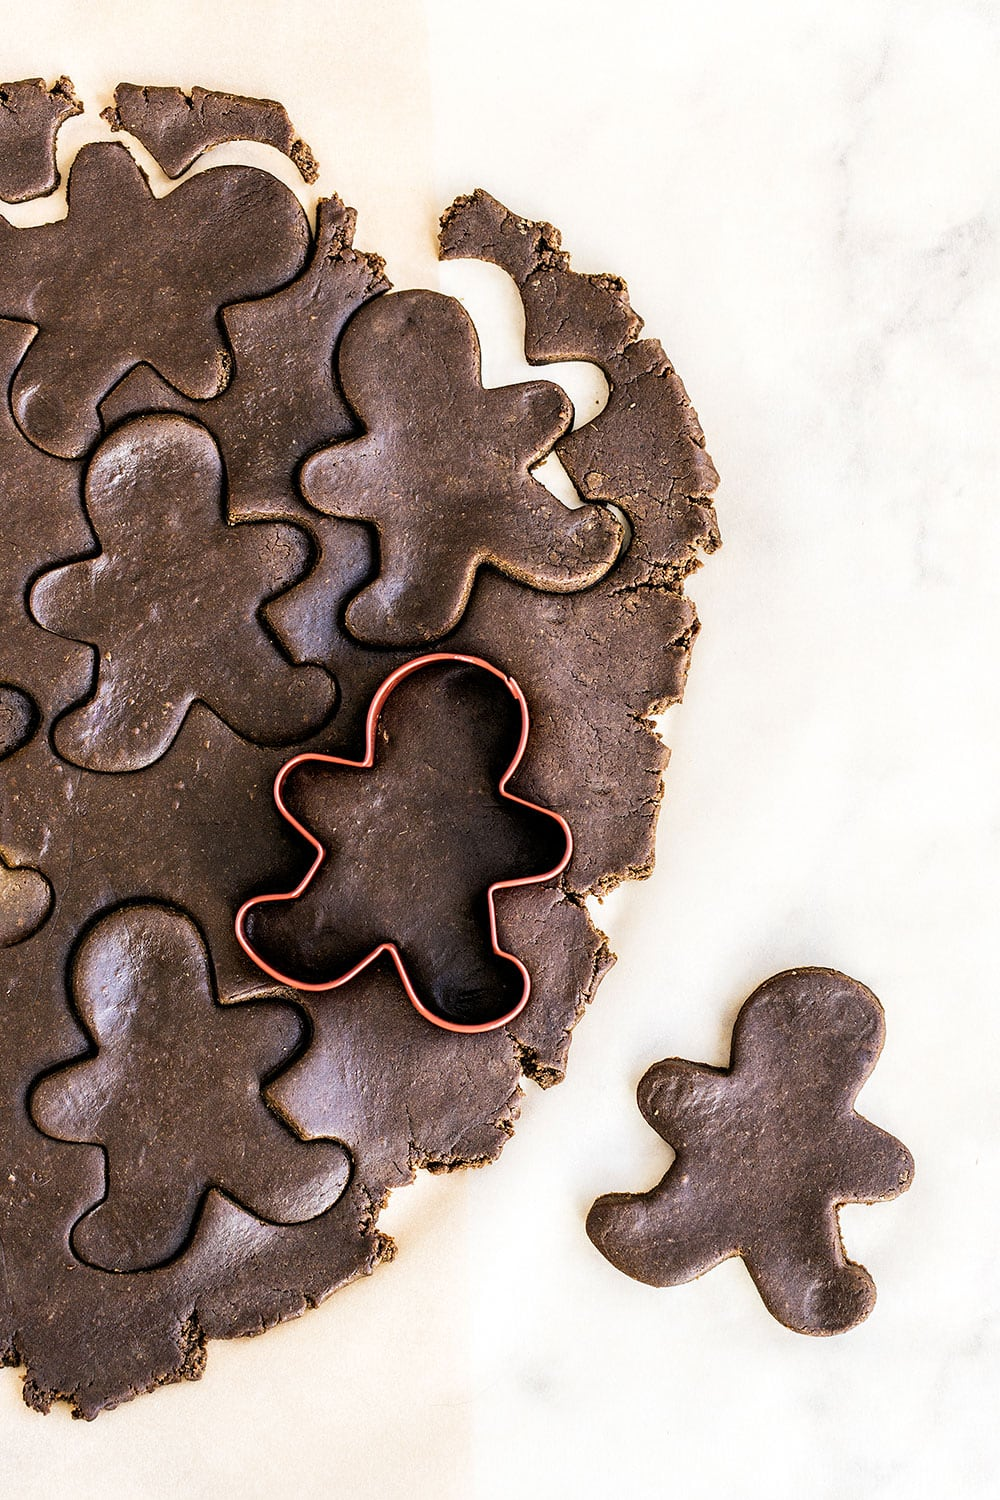 This gingerbread cookie dough is so easy to work with and the cookies actually keep their shape while baking!